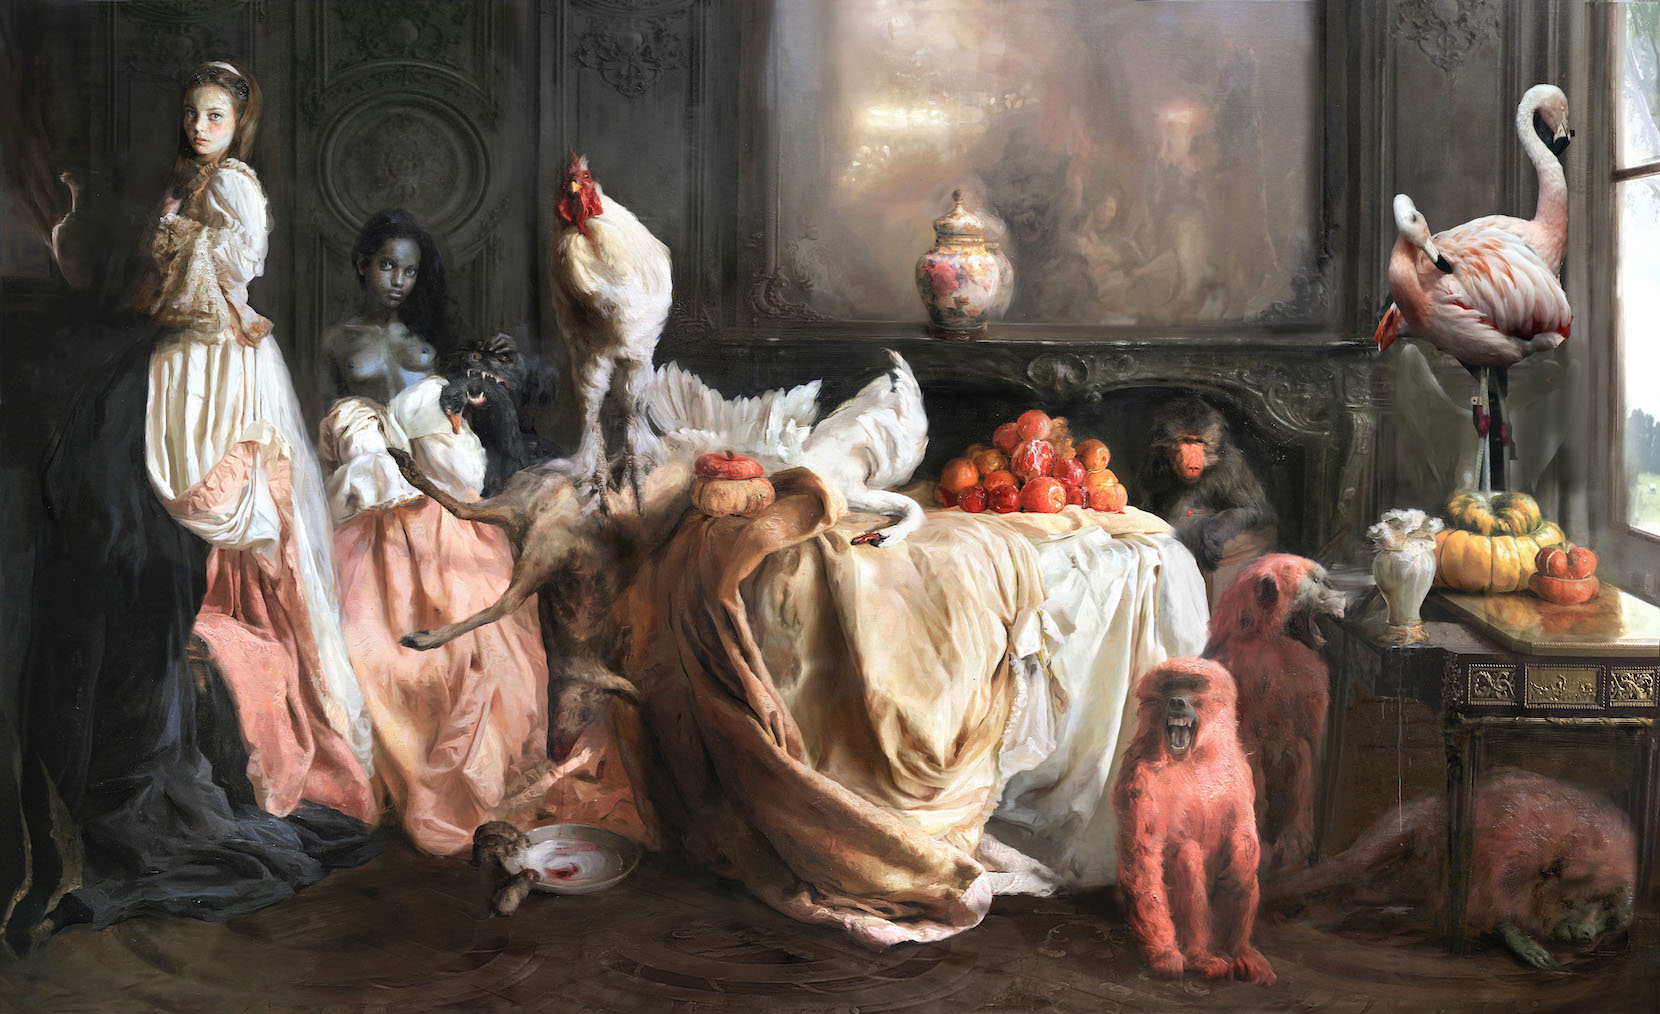 Guillermo Lorca, The Yaksha party, 2017, oil on canvas, 180 x 300 cm